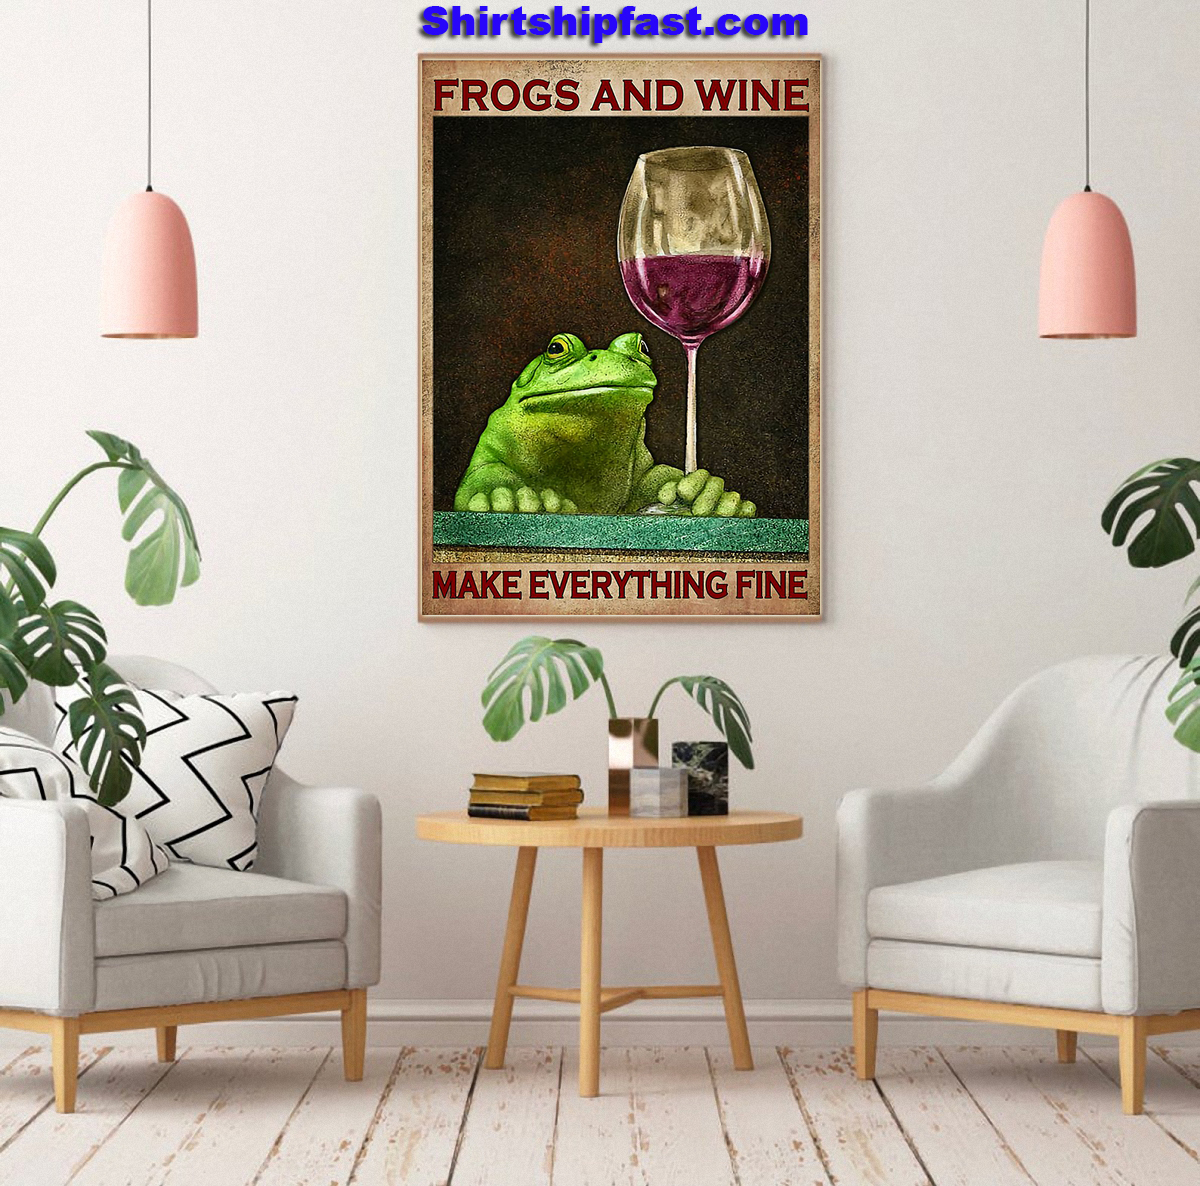 Frogs and wine make everything fine poster - Picture 1